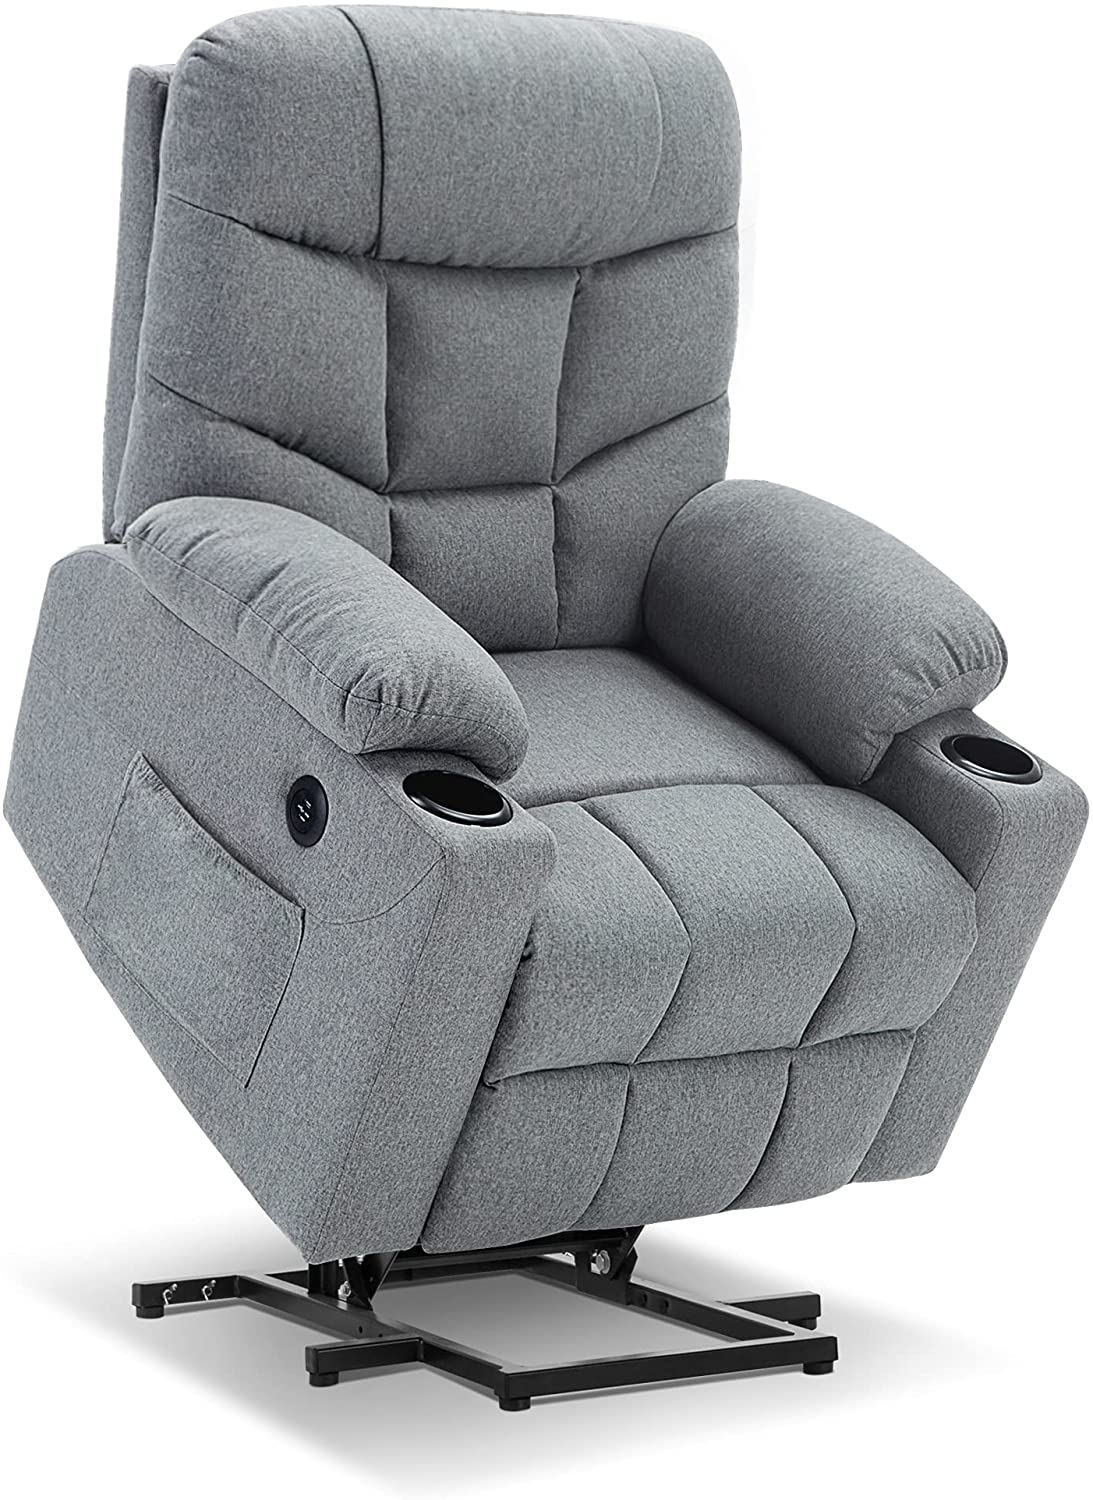 mcombo electric power lift recliner chair sofa for elderly